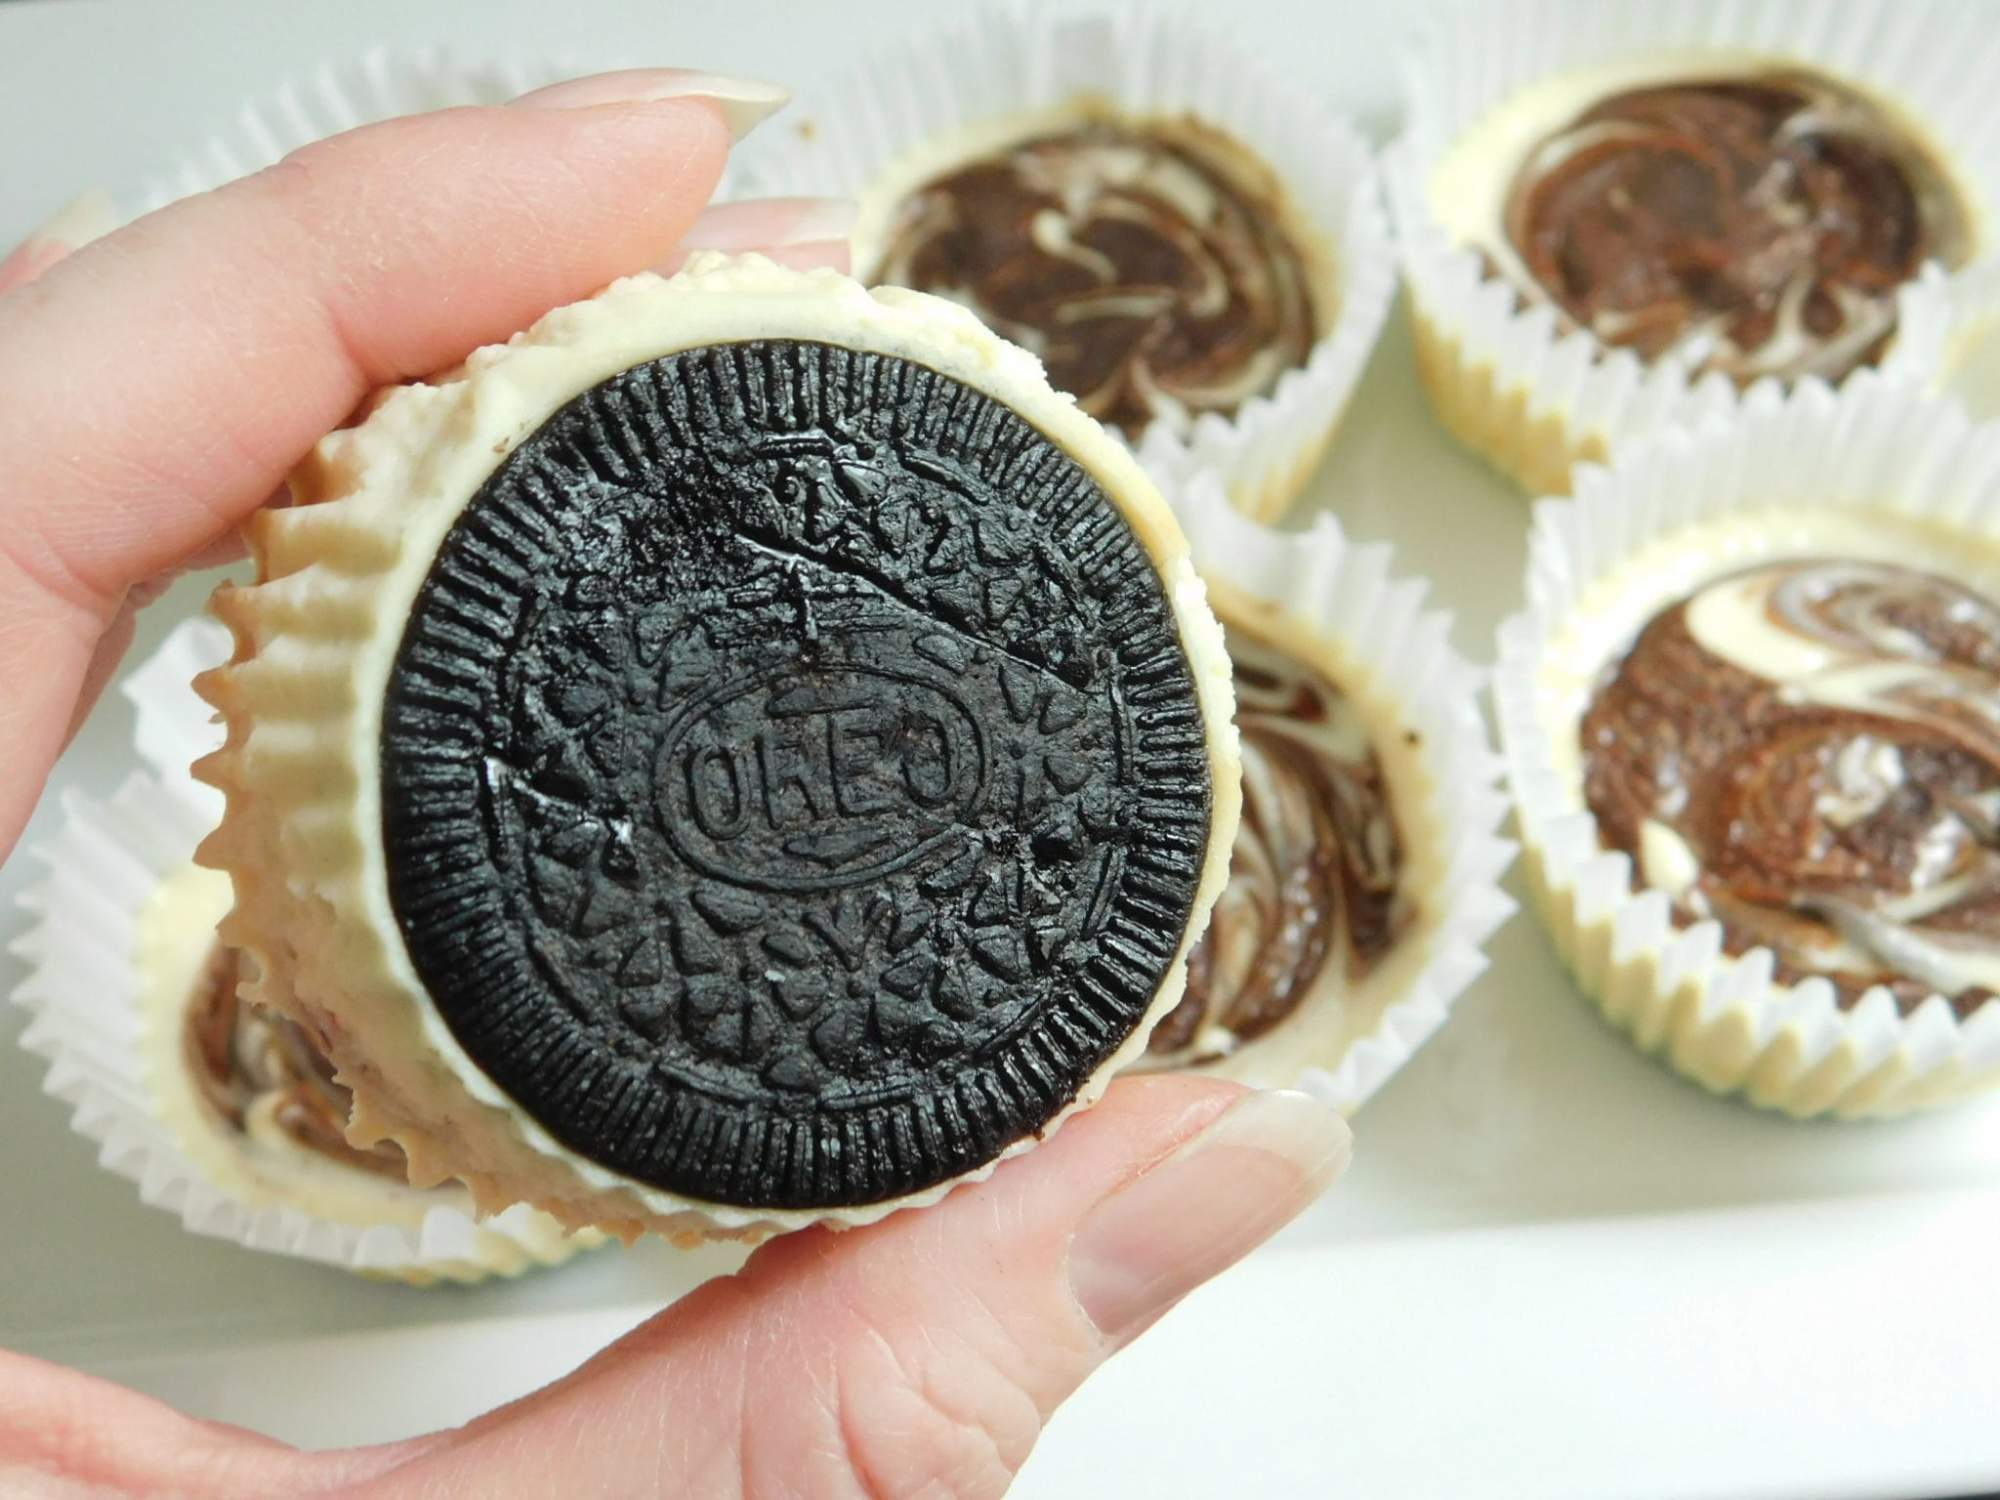 Skinny Oreo Cheesecakes with a chocolate swirl in a cupcake tin.